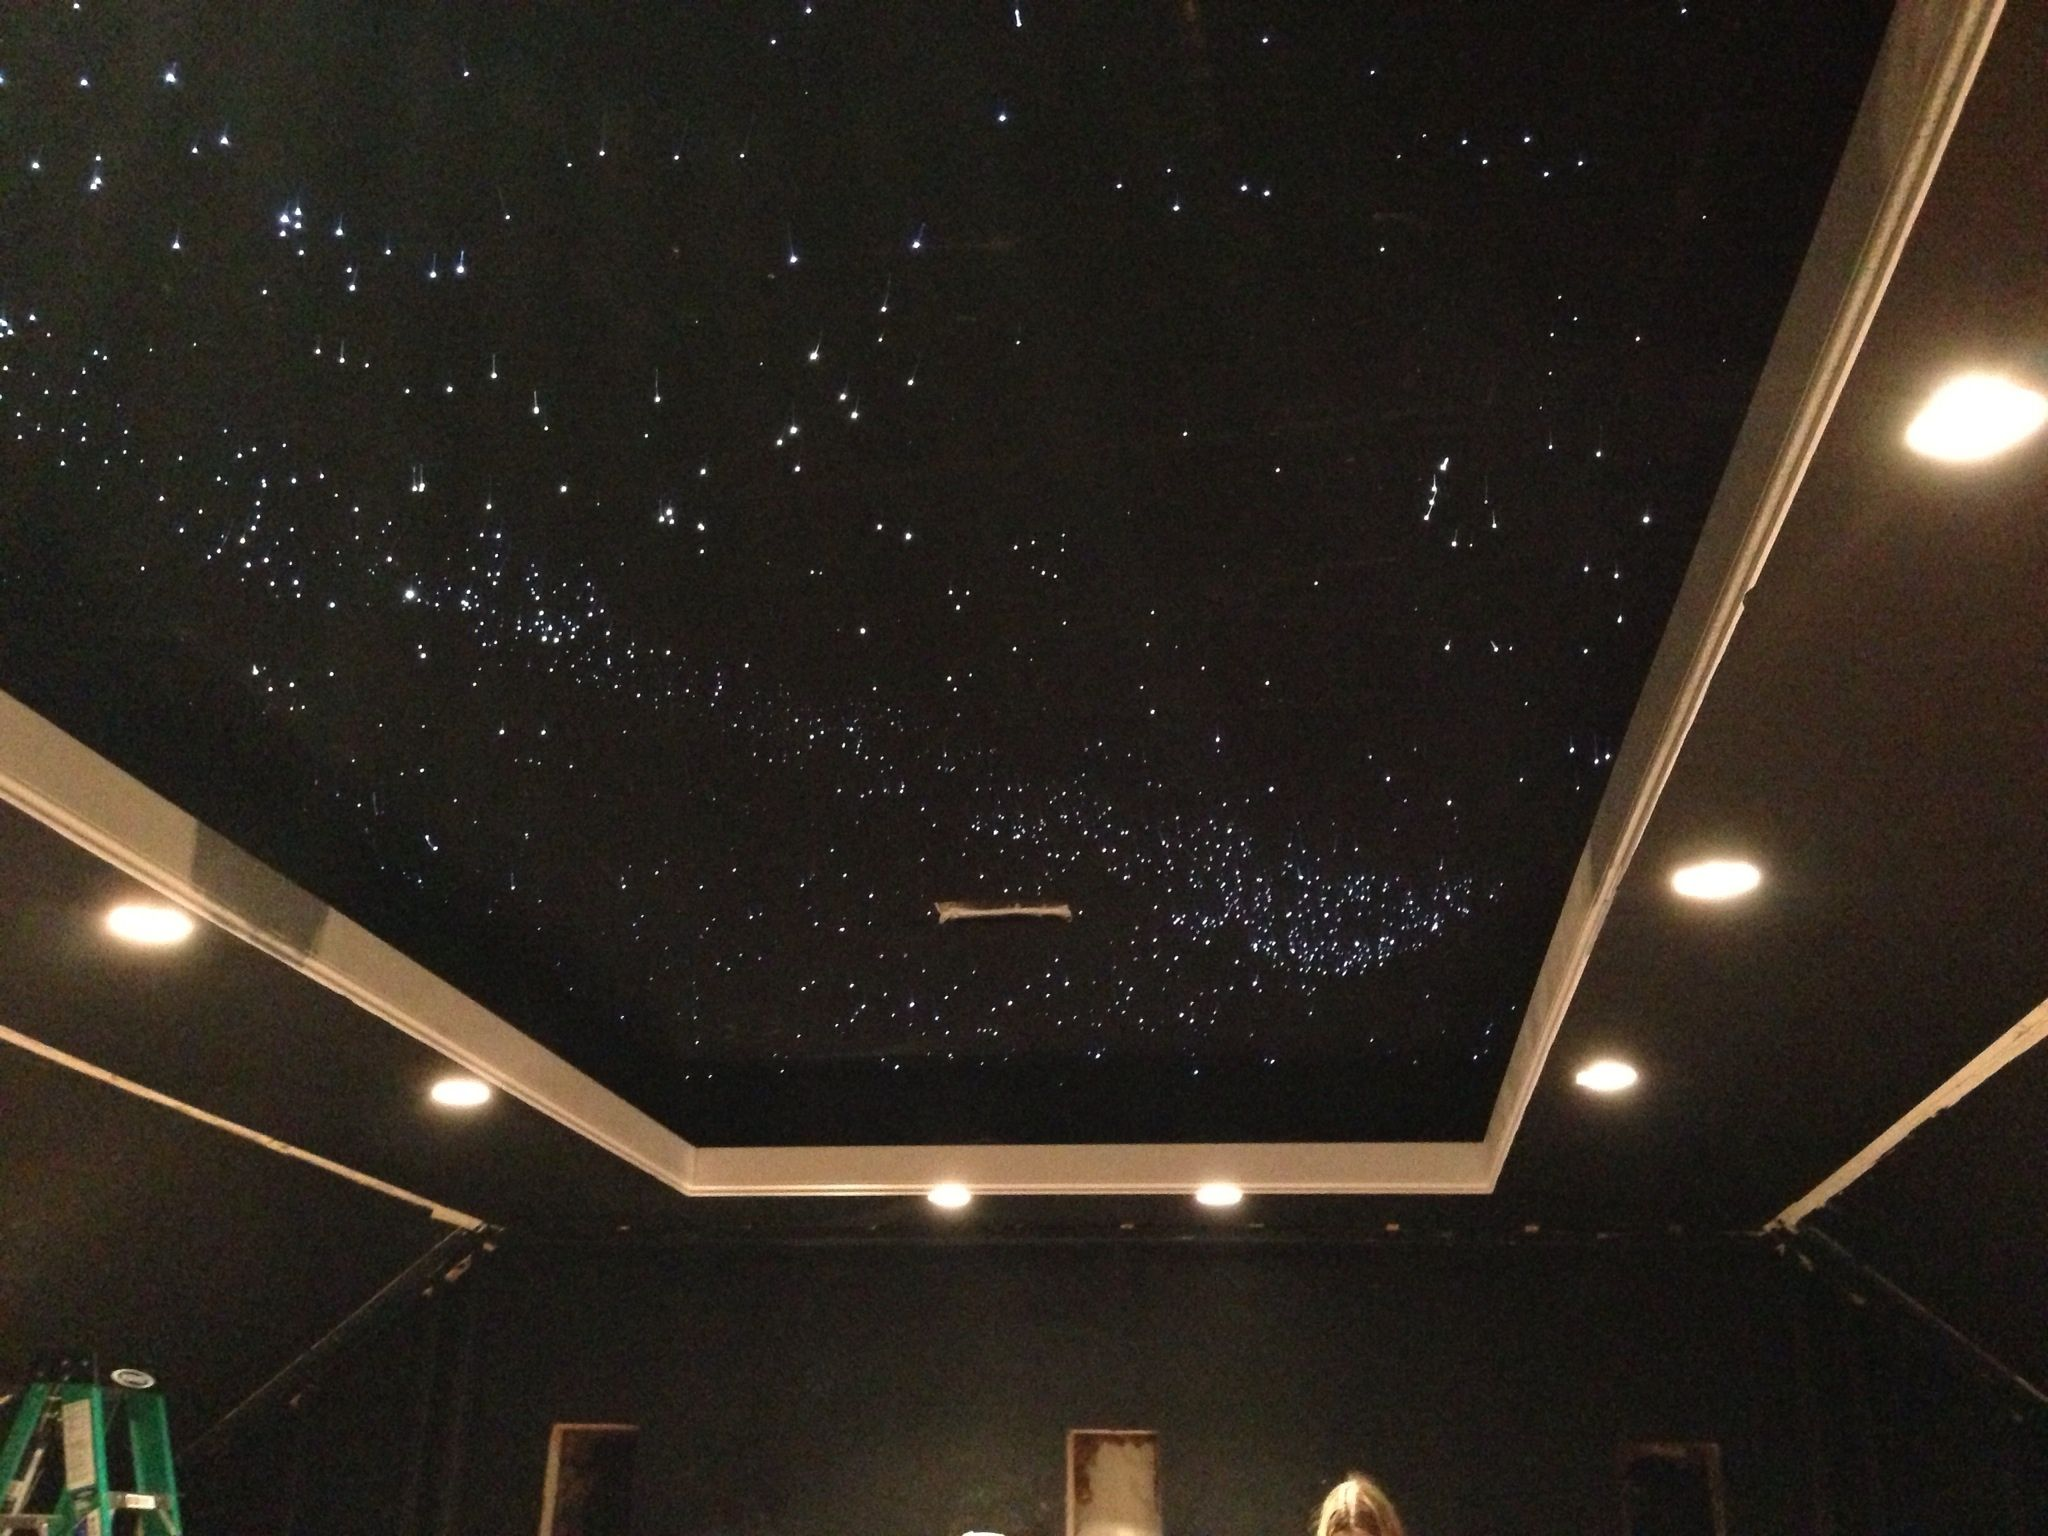 Ceiling Constellation Projector Attached To App That Presents The